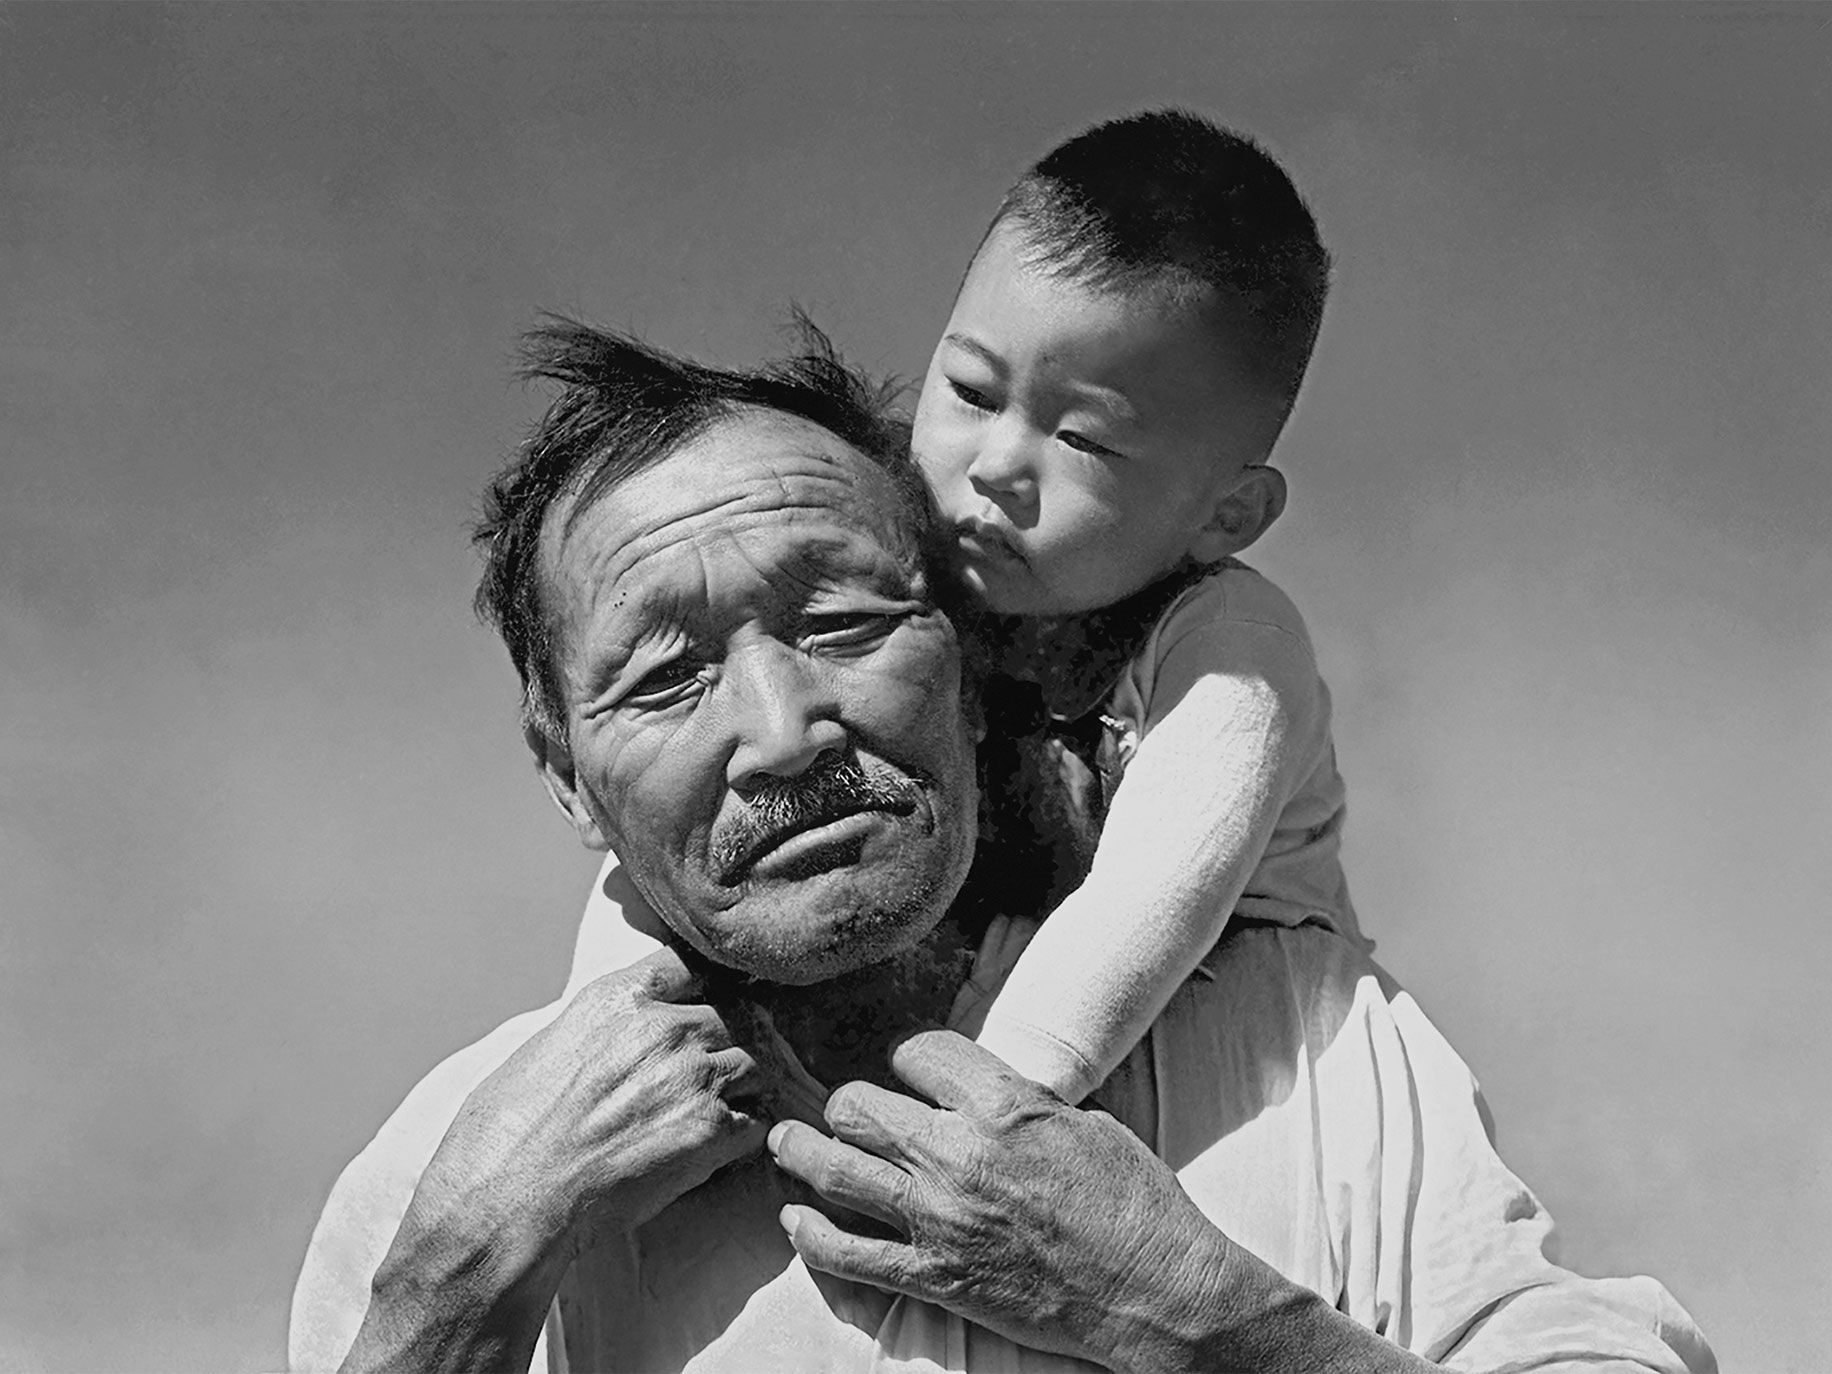 "Walter Yoshiharu Sakawye, 17 months old, hangs off the back of his paternal grandfather, Torazo Sakawye, at the Manzanar War Relocation Center, in California, in 1942. Walter was born in East Los Angeles in 1941, and his father was a trucker in Venice, California, hauling produce from the fields to a market downtown. The family owned a double lot, with a house on one lot and three trucks on the other. When they returned after the war, the trucks and all their tools were gone. Torazo was a truck farmer who had immigrated to the United States from Japan in 1902. He died in the internment camp at age 68. ""He passed away, I think, more or less of a broken heart,"" Walter says. ""In the picture, he just appears to be saying, 'What'd I do? Why am I here?' """